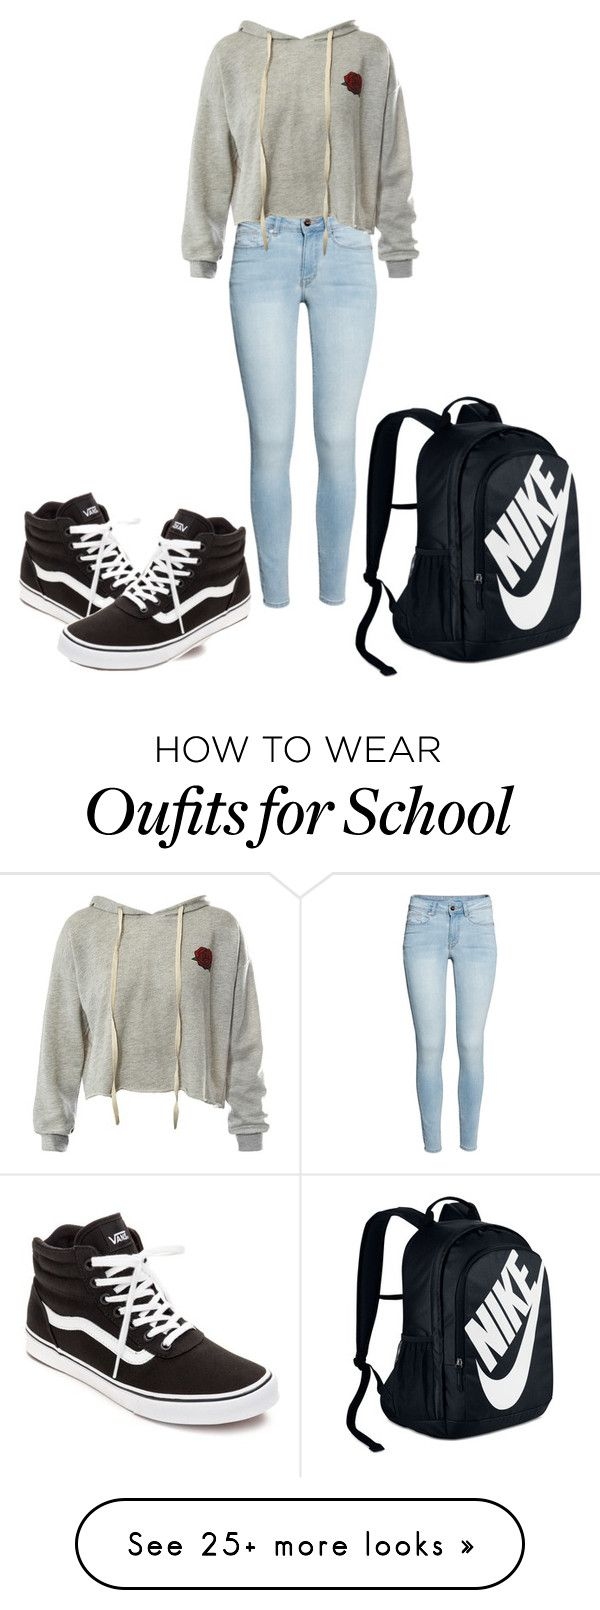 """School outfit  [#20]"" by gglovesu on Polyvore featuring Sans Souci, Vans and NIKE"